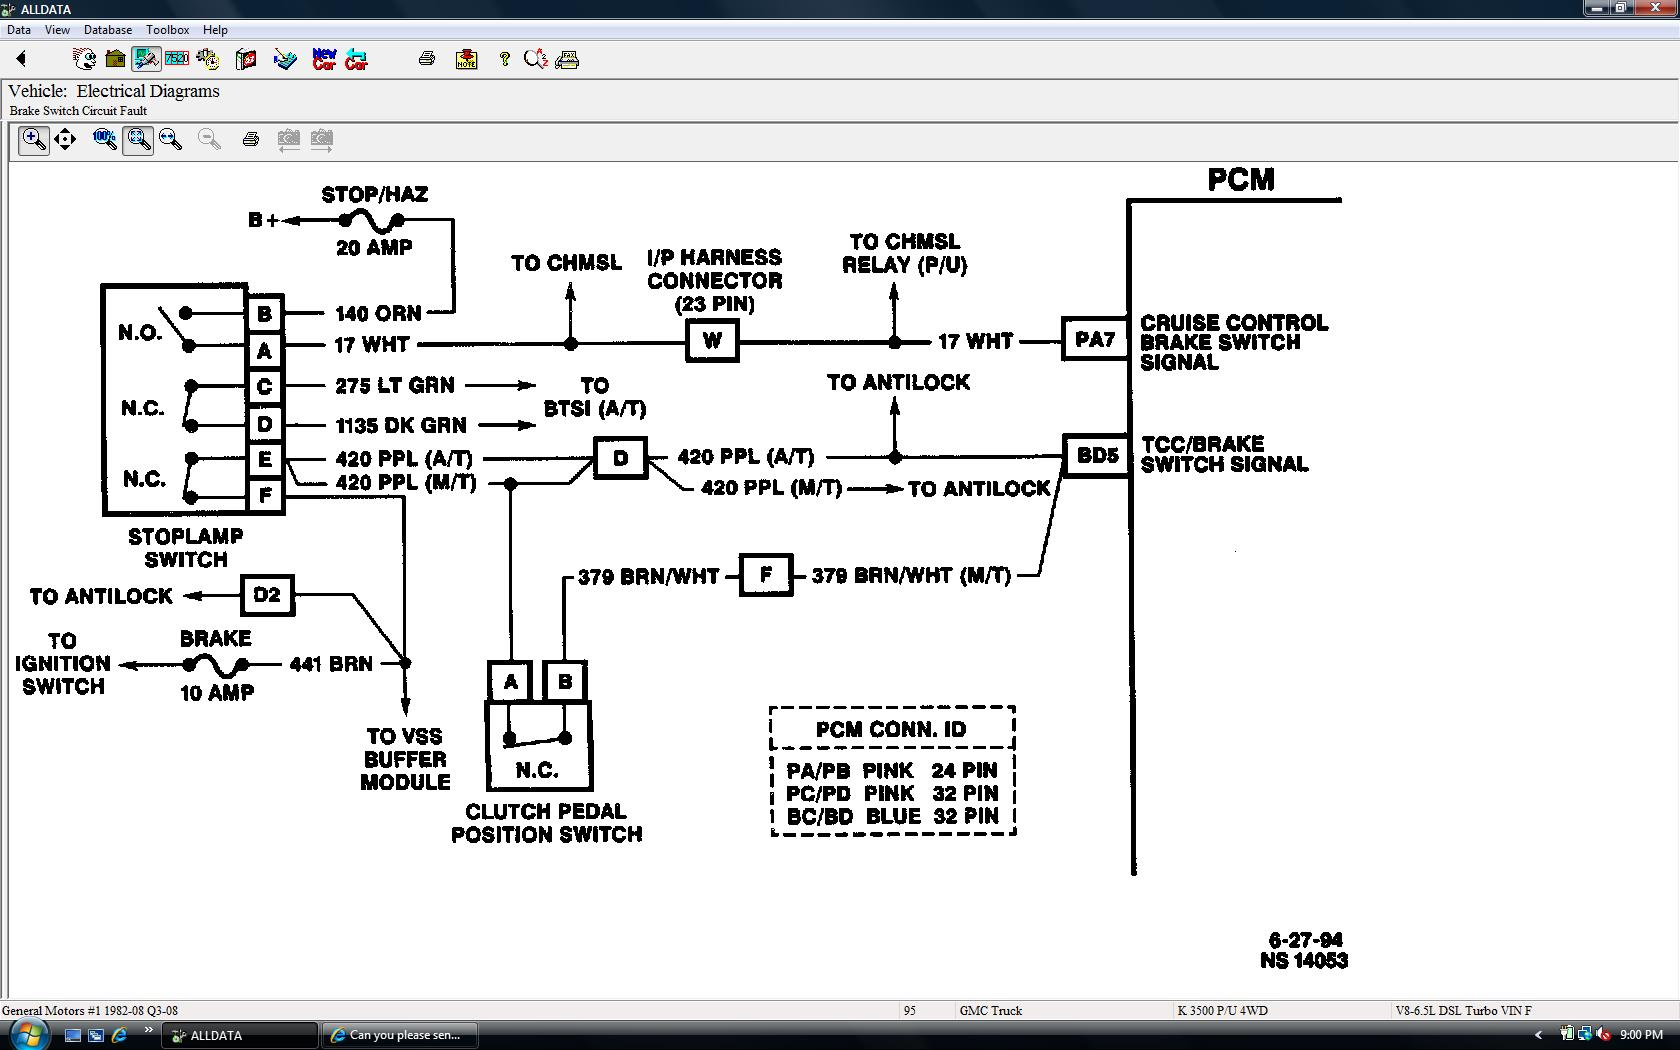 Can You Please Send Me A Wiring Diagram Of The Tcc Circuit